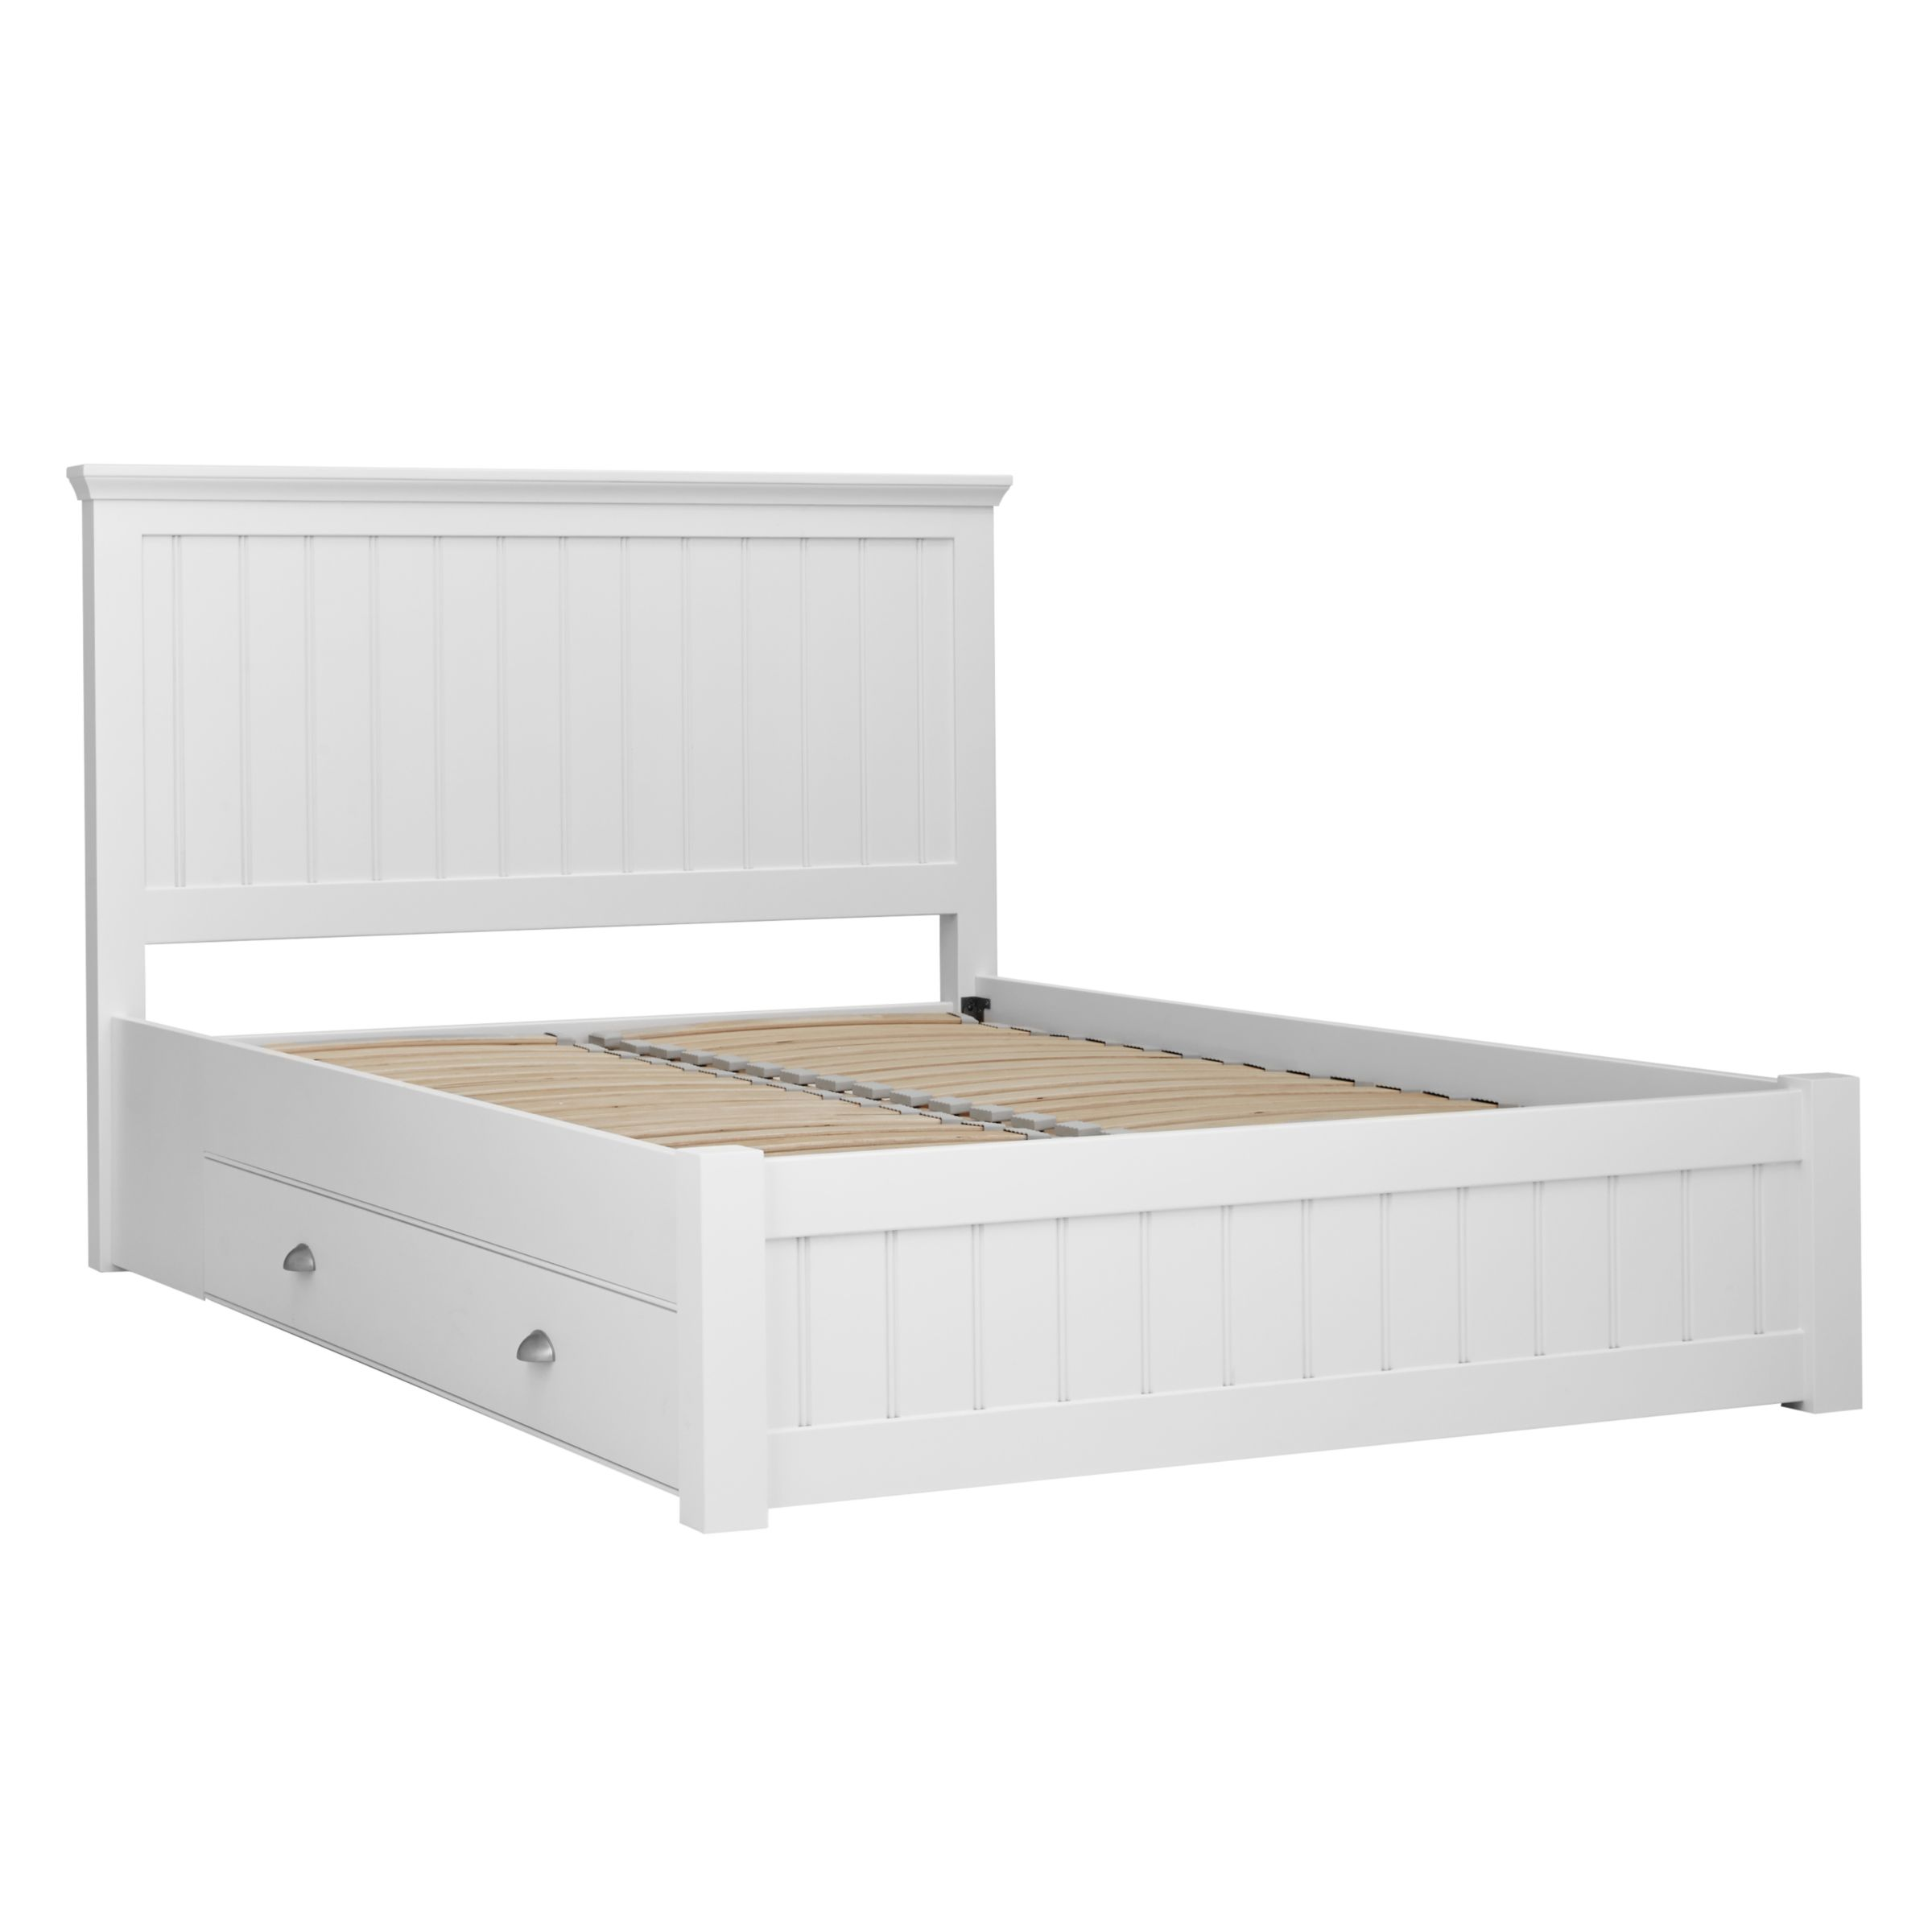 Picture of: John Lewis Helston Storage Bed Double At John Lewis Partners